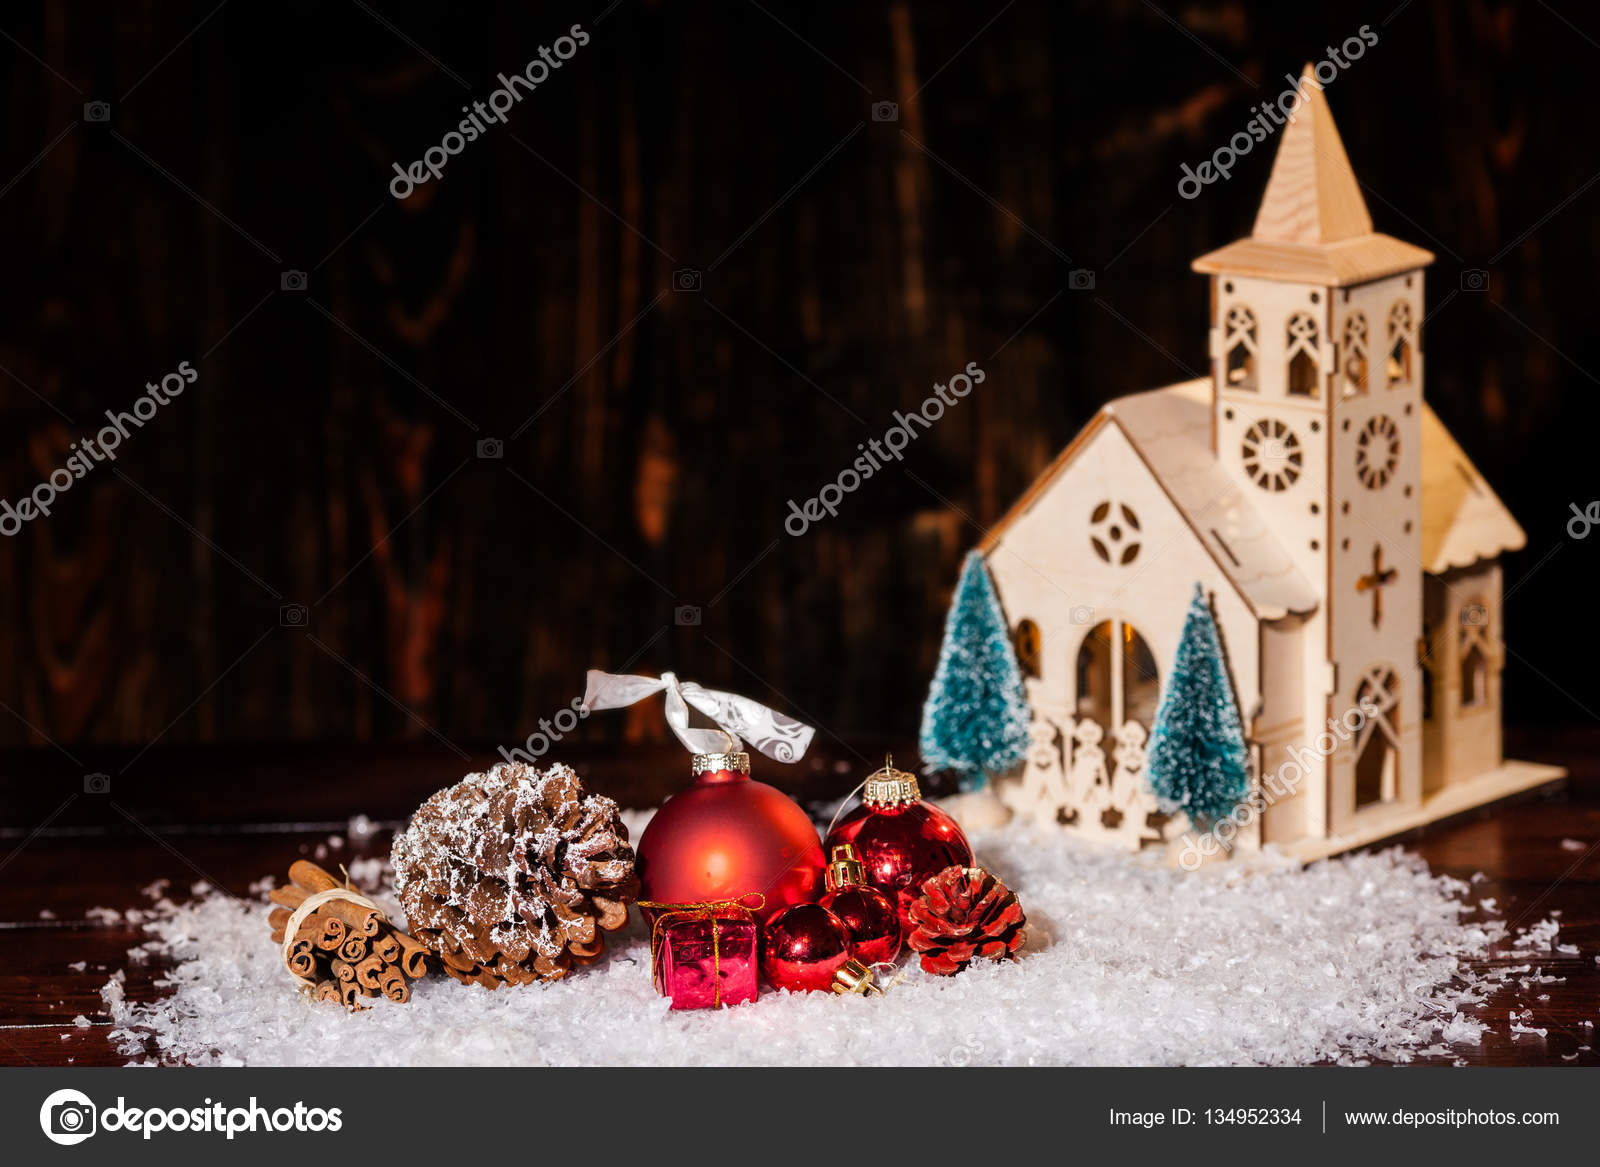 Stylish Rustic Winter Wallpaper With Pine Cones Baubles And Wooden Church Stock Photo